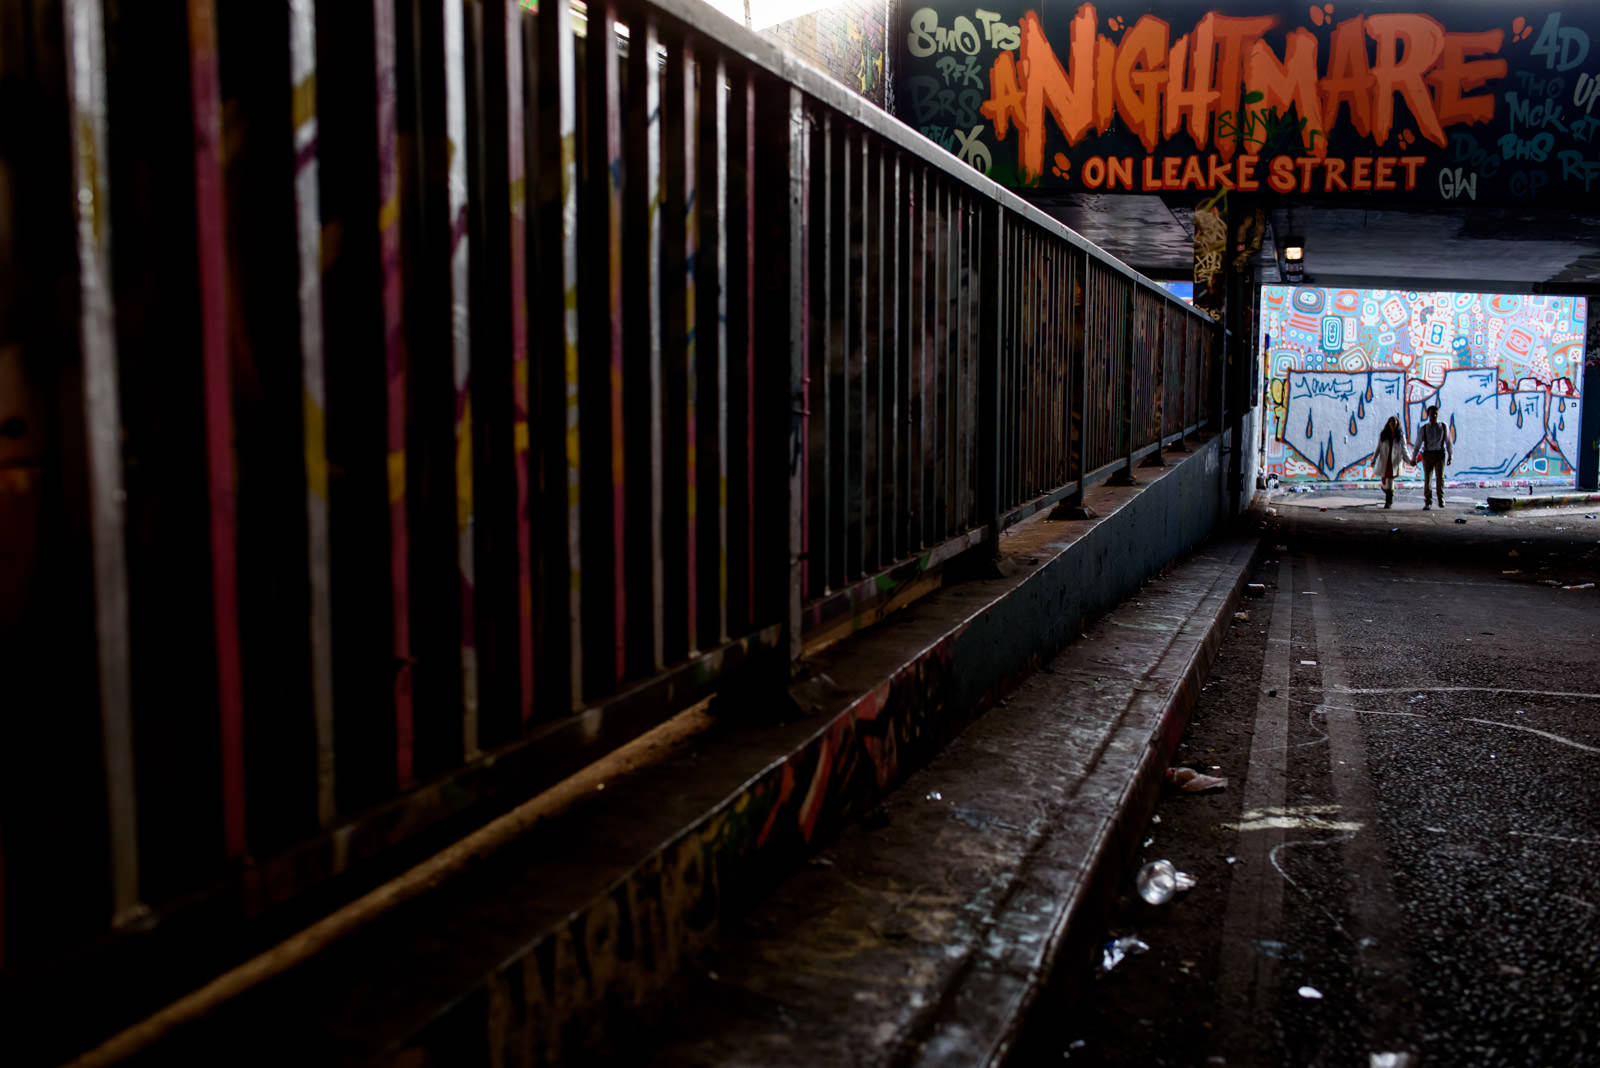 Couple engagement shoot in the Waterloo Tunnels with Nightmare on Leake Street Graffiti